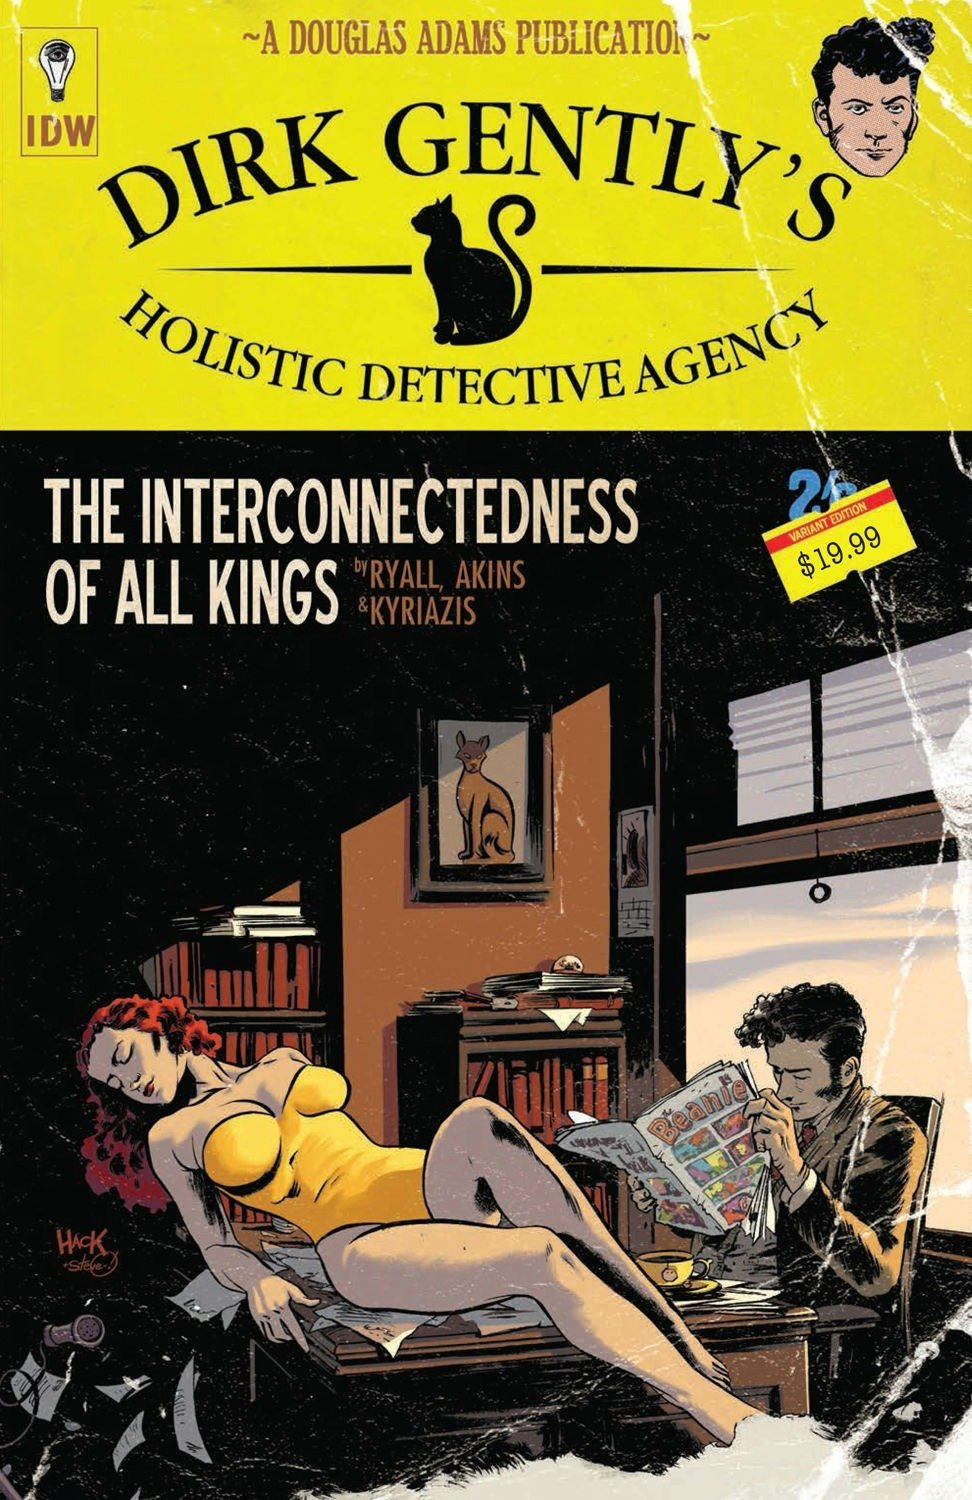 Dirk Gently's Holistic Detective Agency: The Interconnectedness of All Kings by IDW Publishing